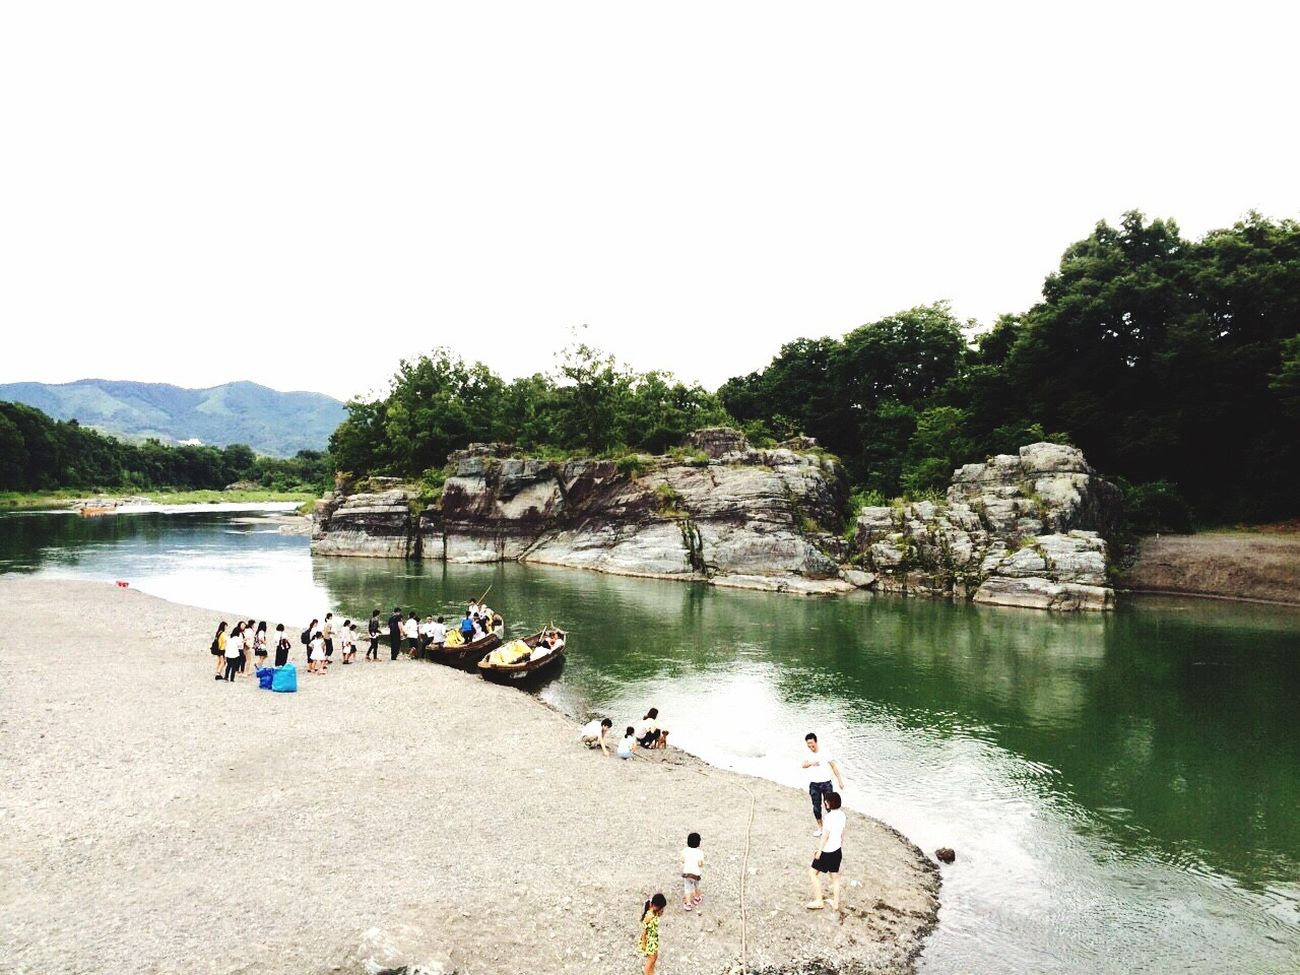 Riverside Nature 絶景 Enjoy Superb View River Enjoying Life EyeEm Gallery EyeEm Nature Lover EyeEm Best Shots EyeEm 癒し Happy Landscape Chichibu Iwadatami 長瀞 Nagatoro Walking